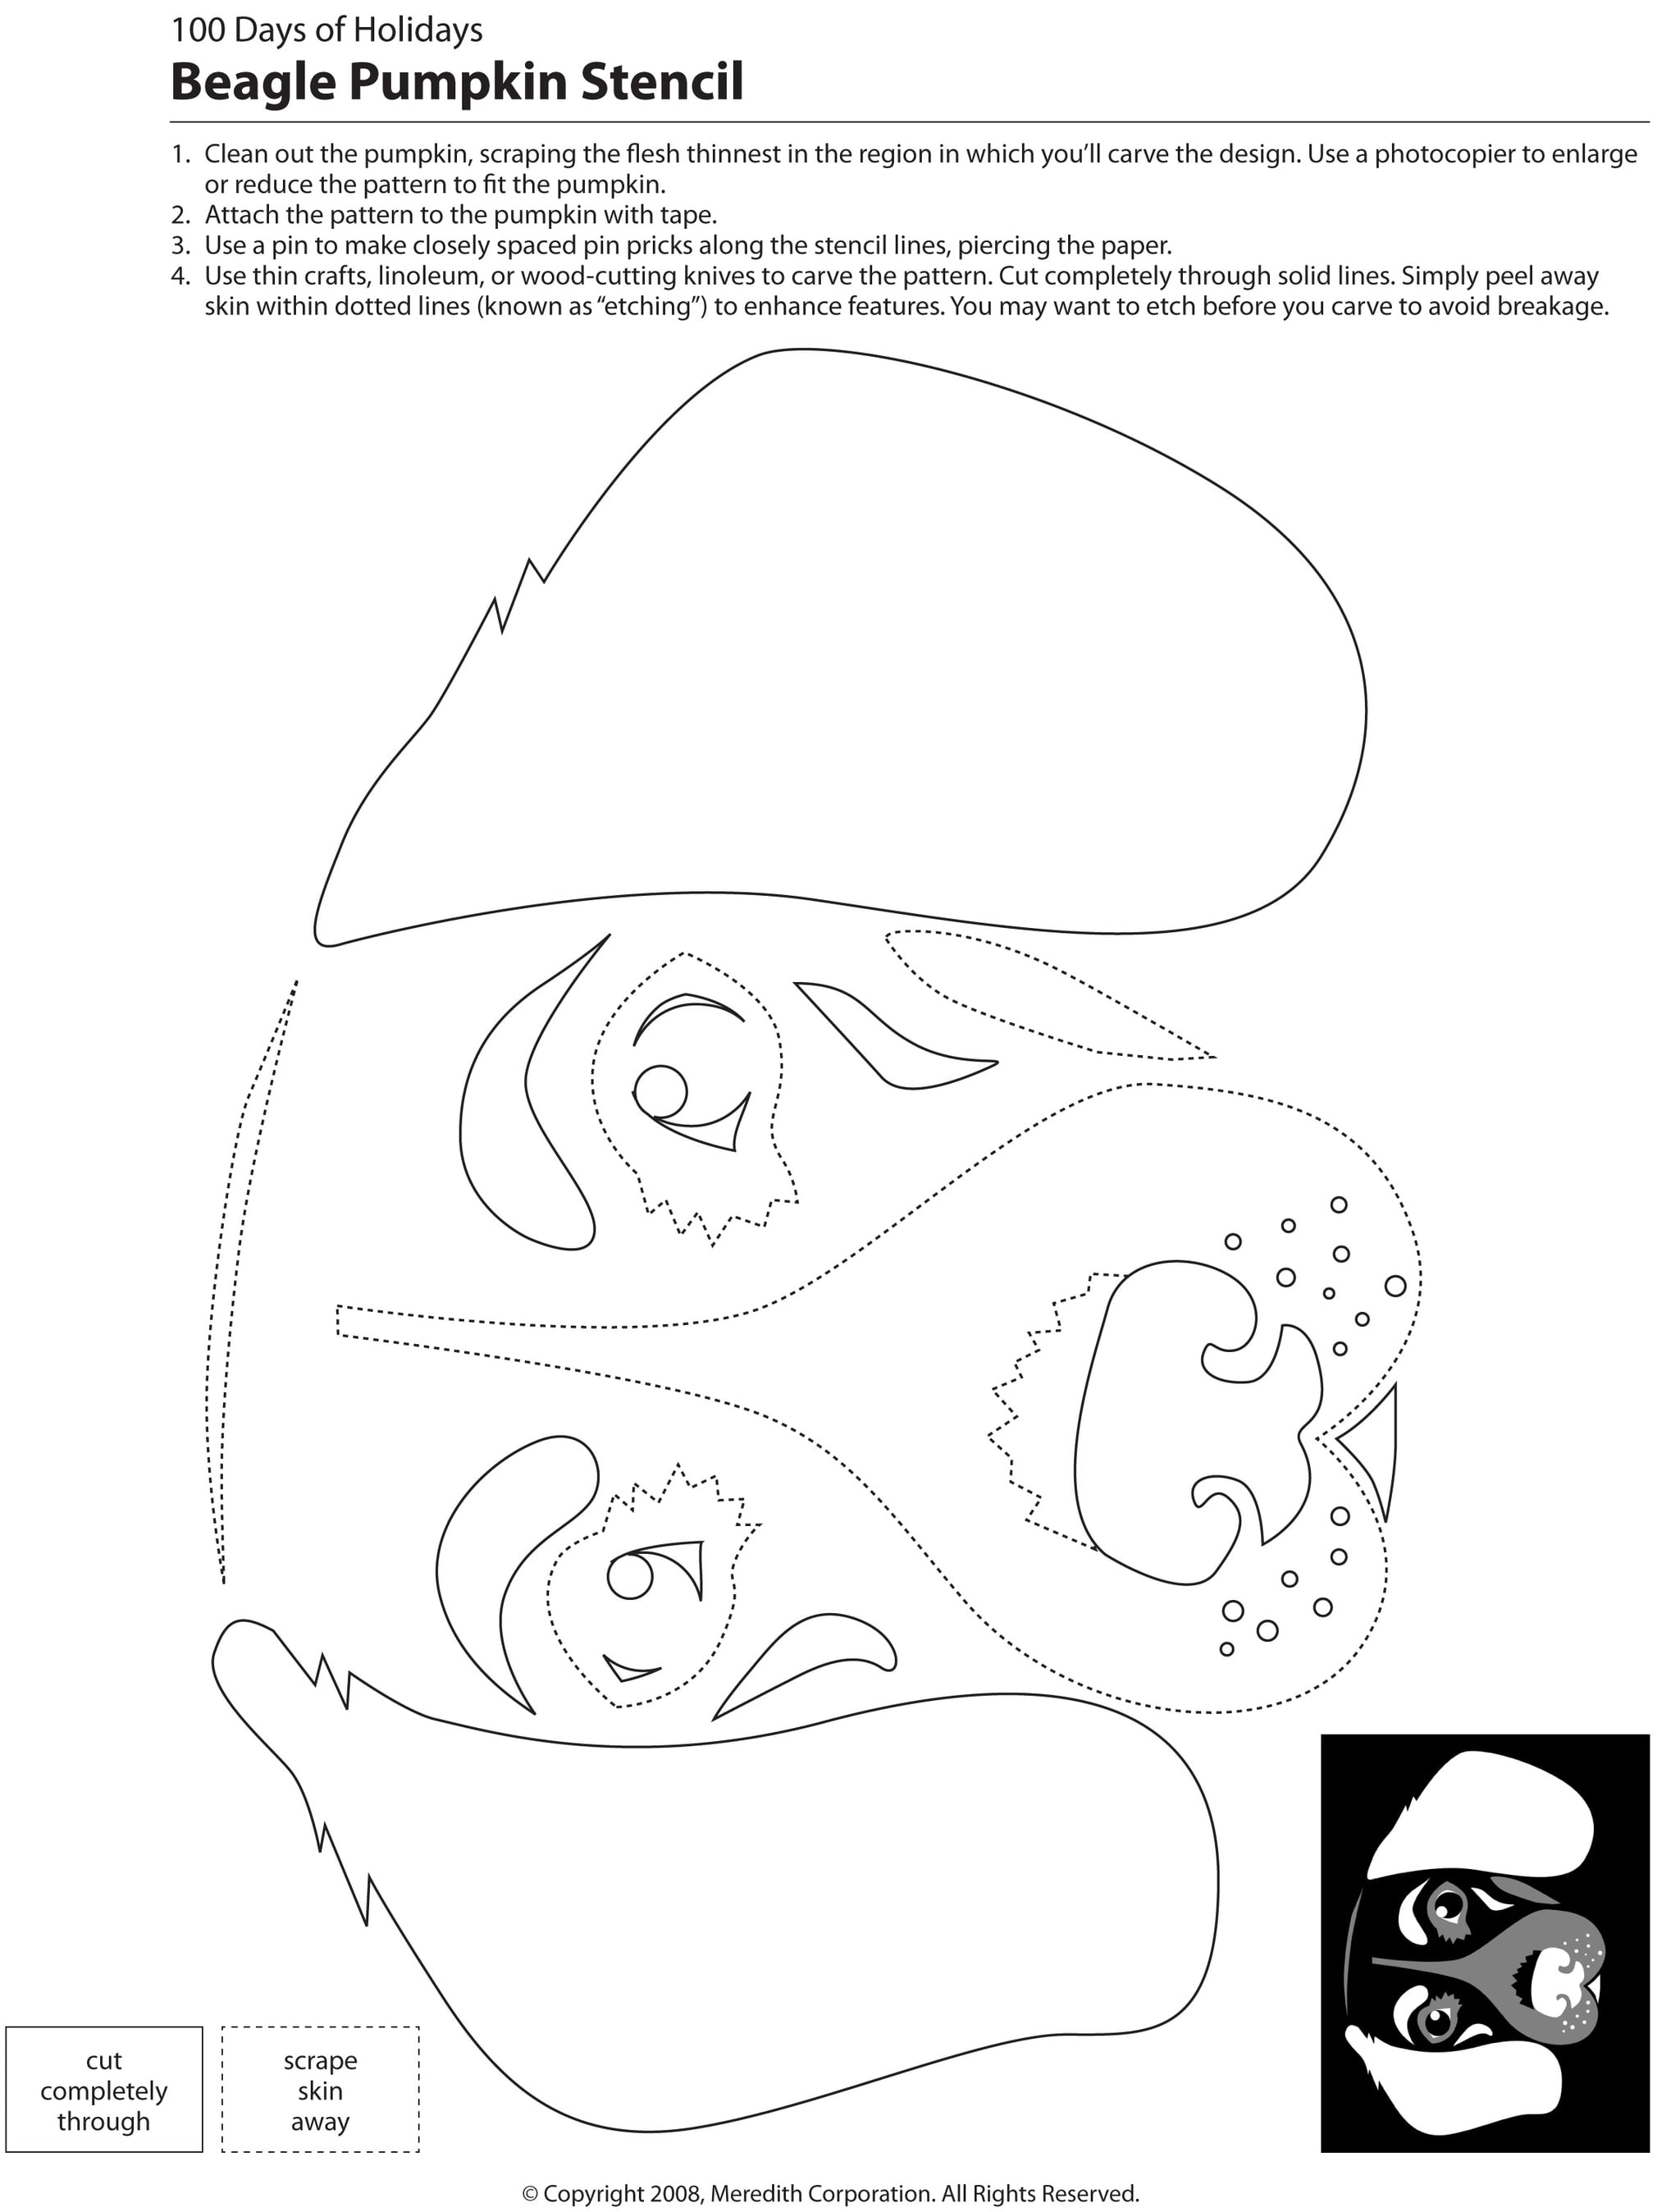 22 Free Pumpkin Carving Dog Stencils (Breed Specific) - Treats Happen